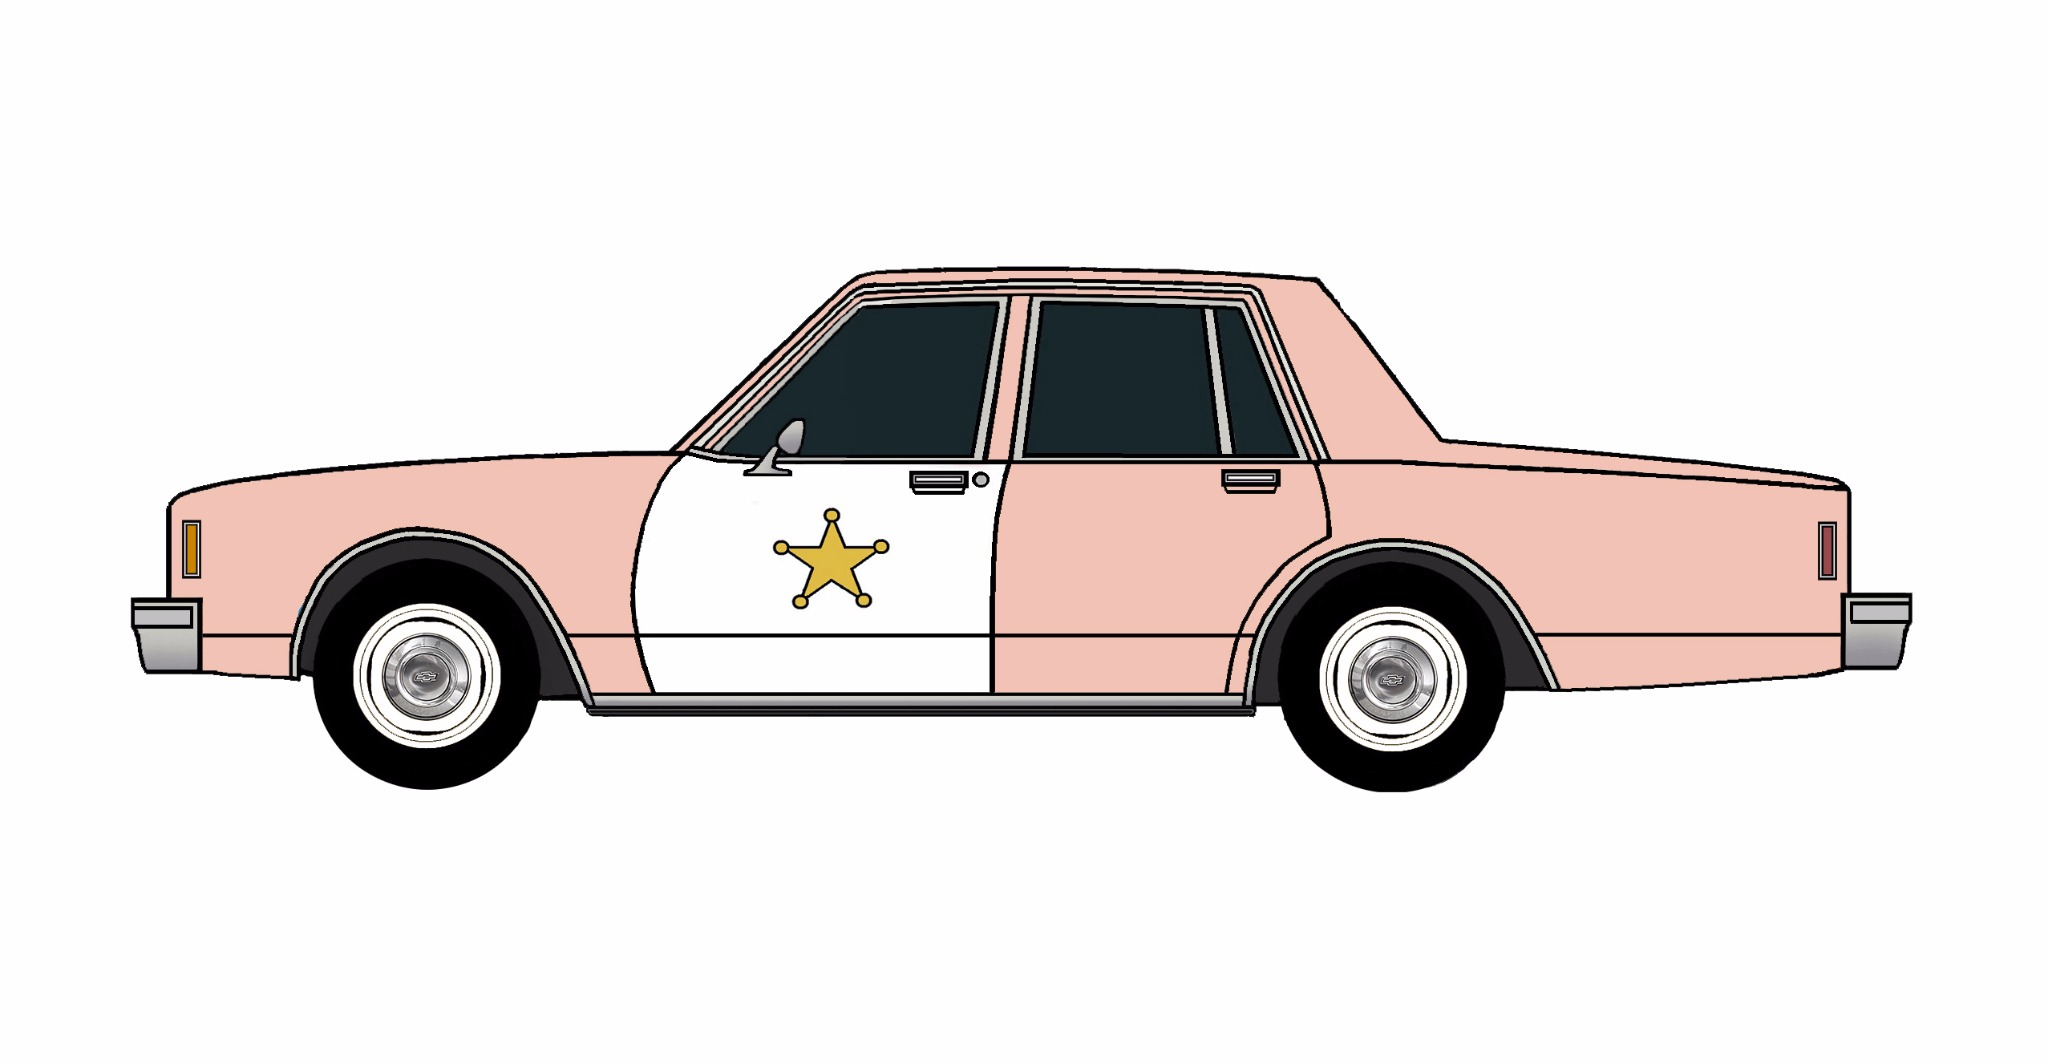 1985 Chevy Impala 9C1 ROSE PINK